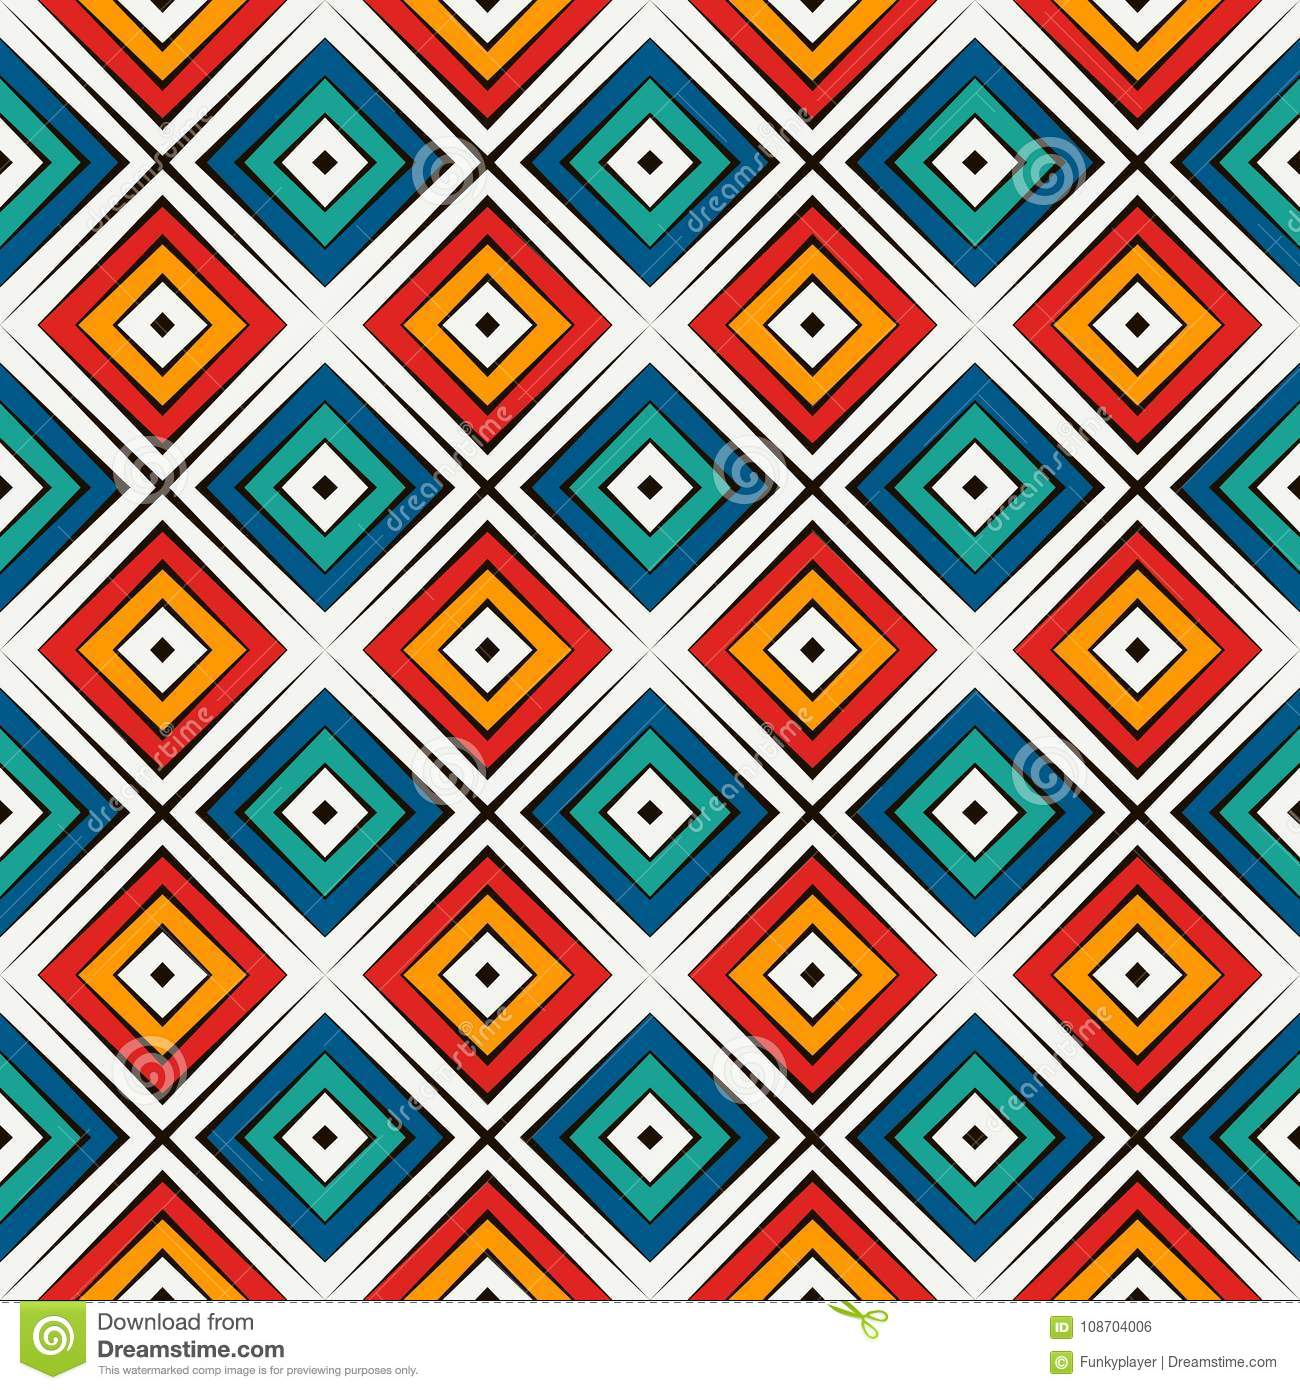 African style seamless pattern in bright colors. Ethnic and tribal motif. Repeated rhombuses abstract background.